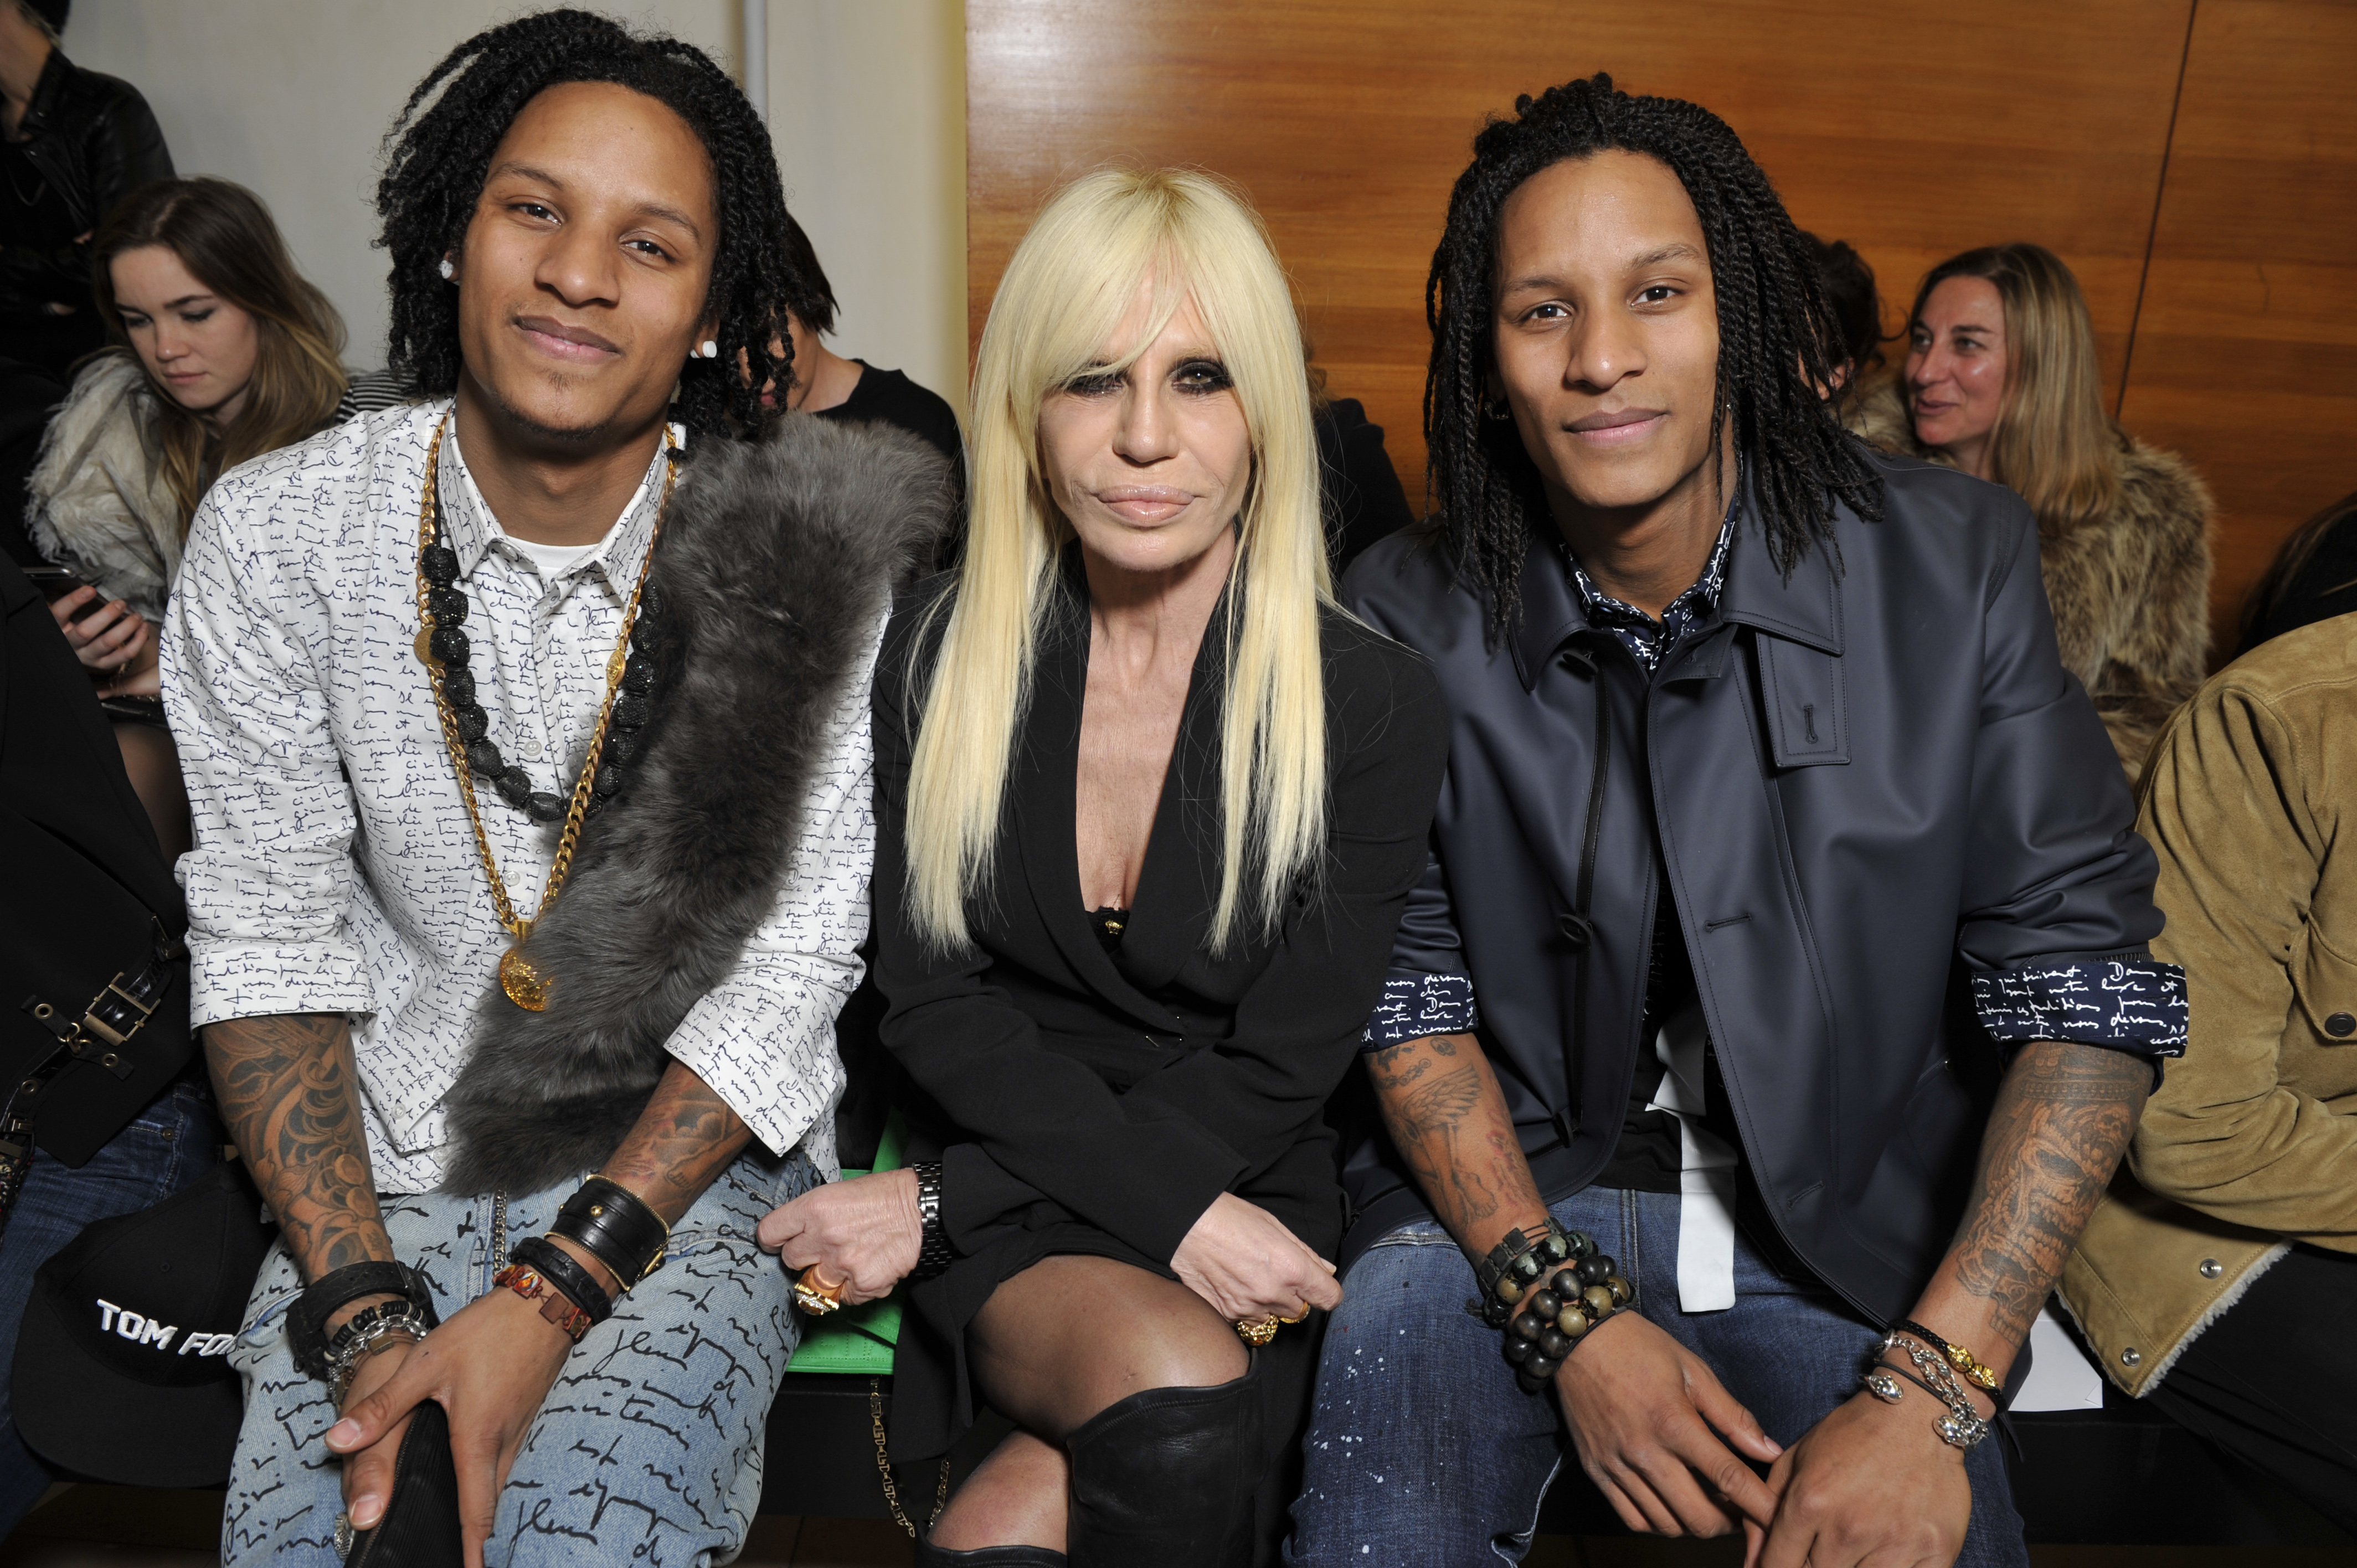 Les Twins and Donatella Versace